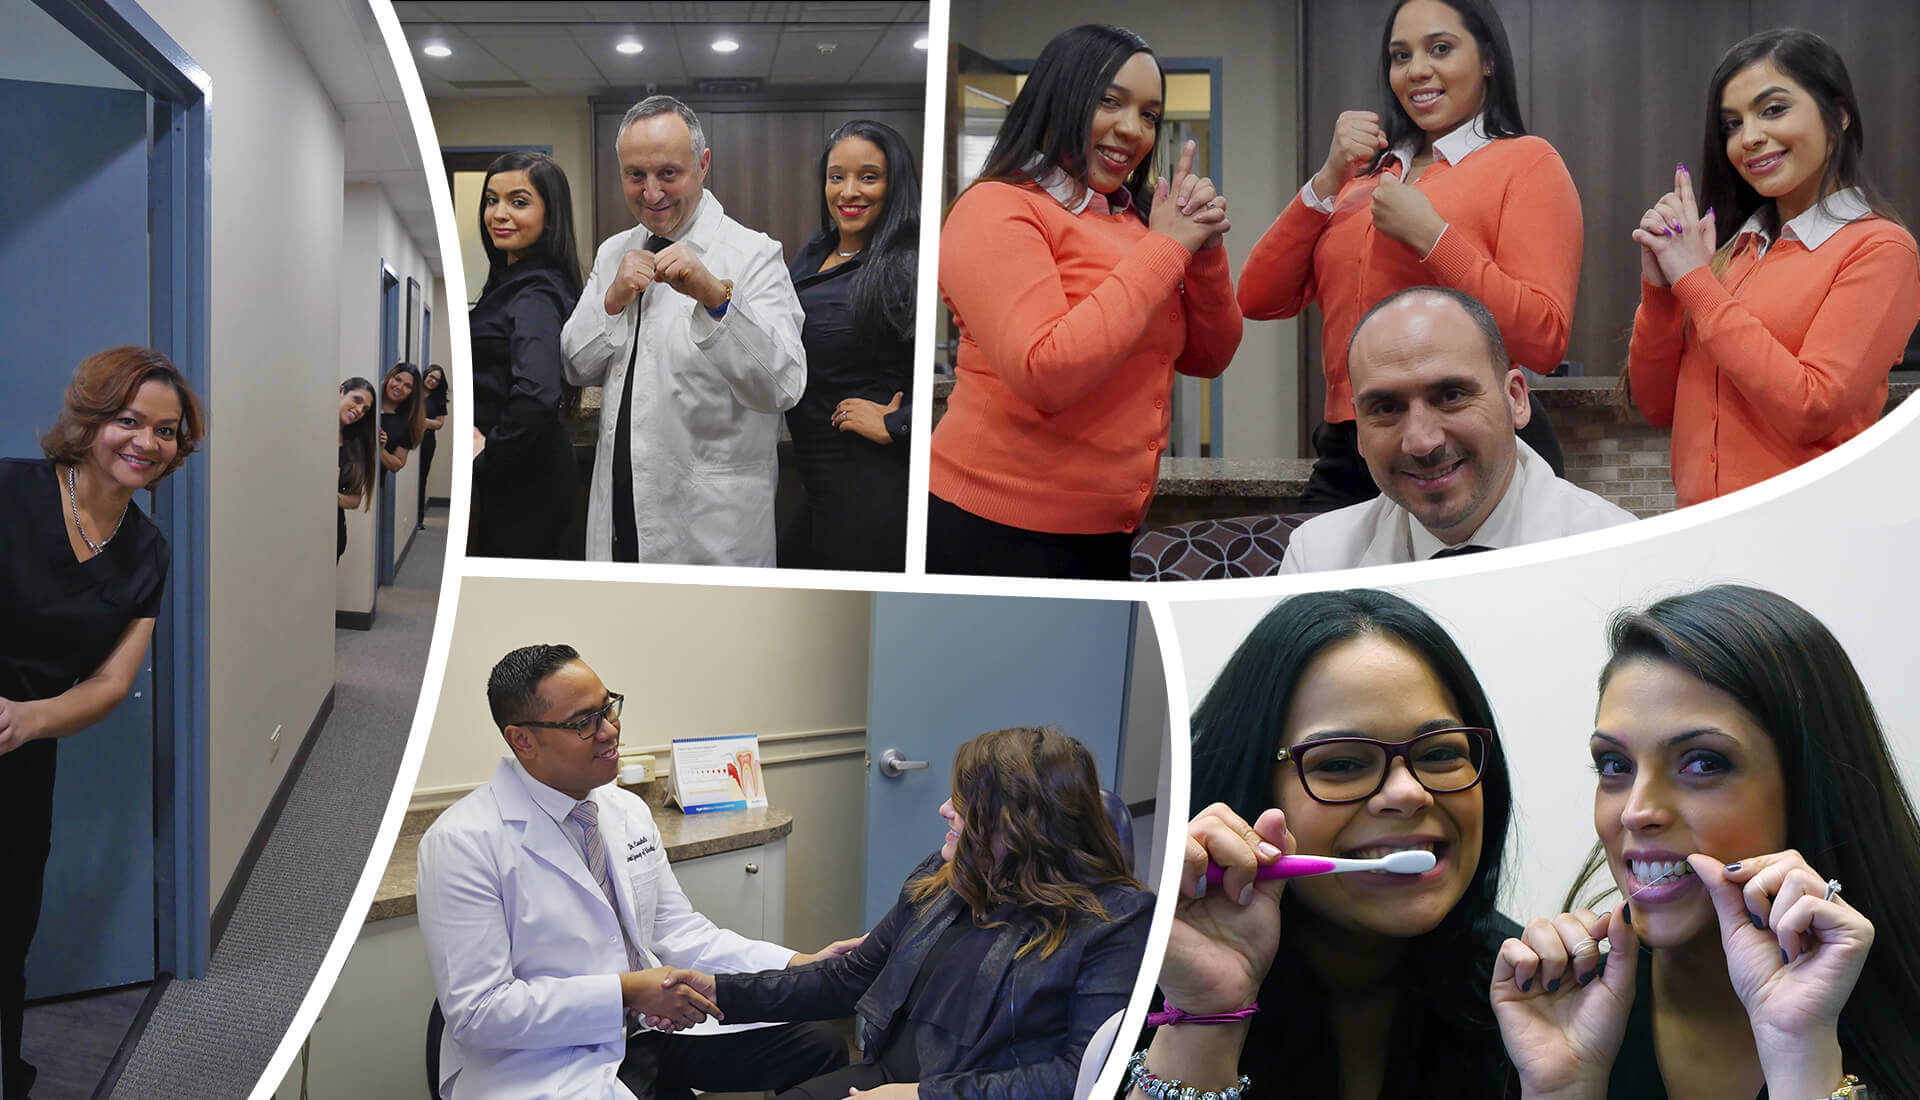 Collage of the Dentist in White Plains NY practices